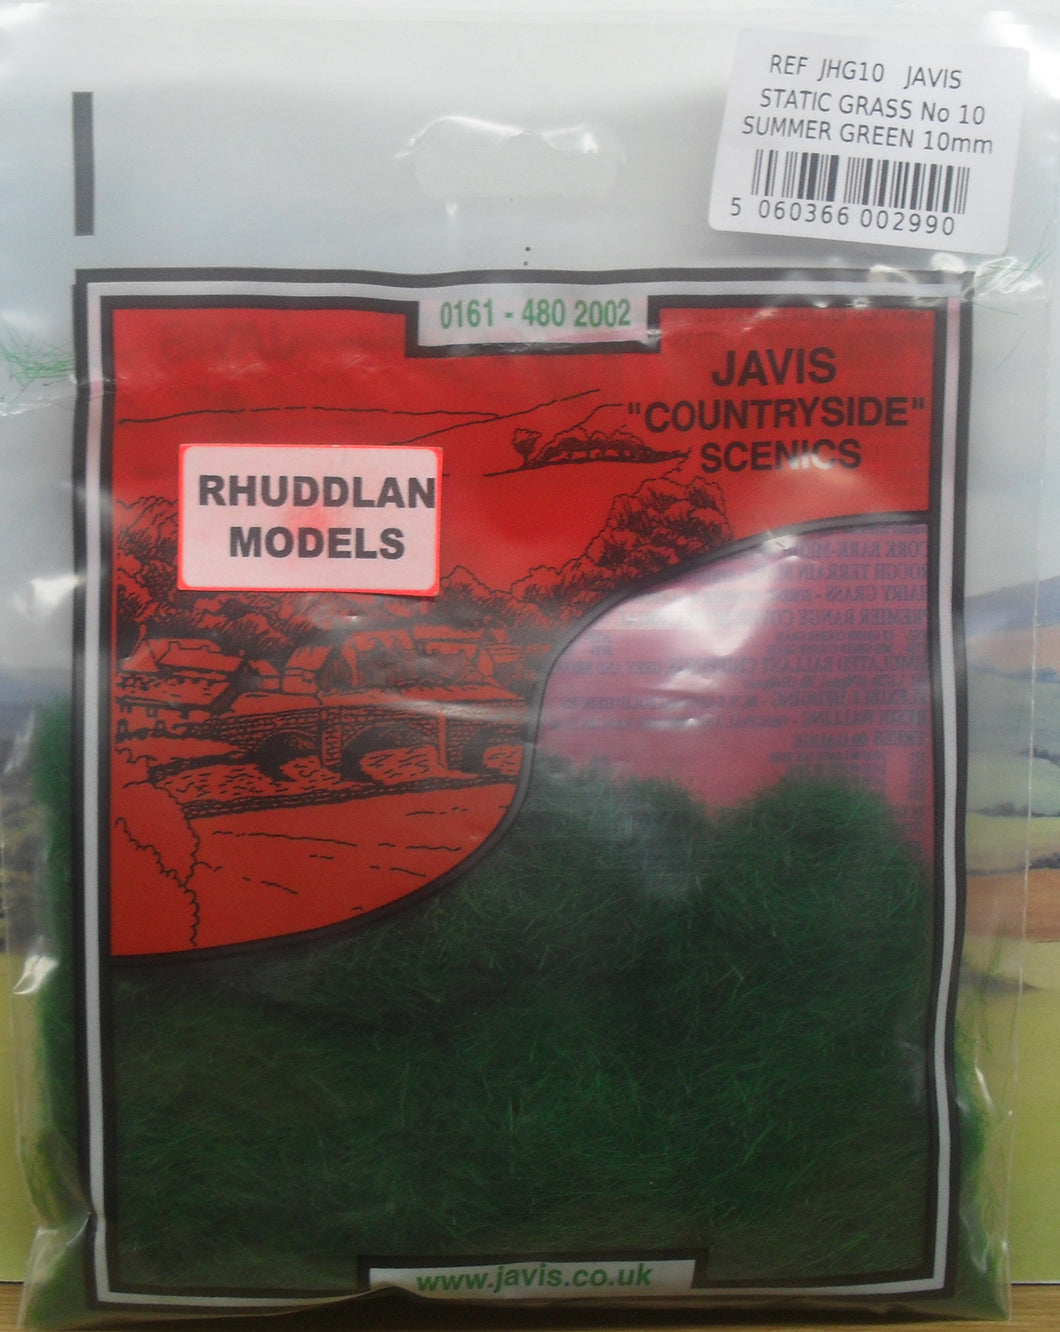 JAVIS REF JHG10 STATIC GRASS NO.10 SUMMER GREEN 10MM - (PRICE INCLUDES DELIVERY)